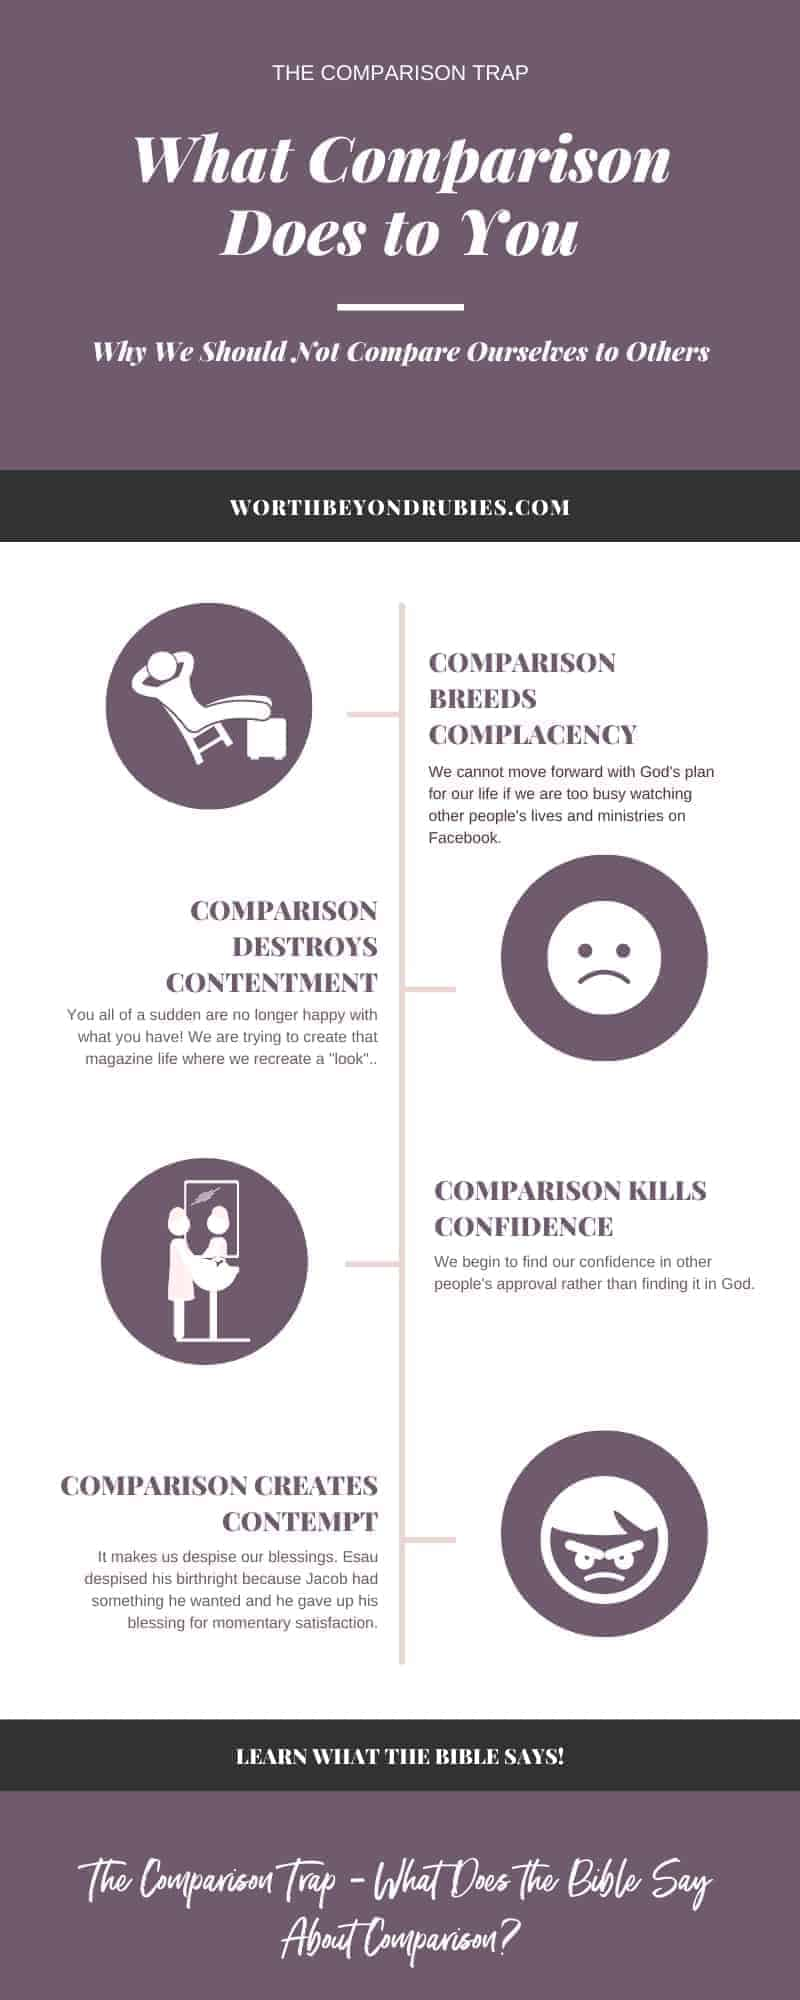 an infographic of 4 dangers of comparison including 1. Creating Complacency 2. Creating Discontent 3. Killing Confidence and 4. Creates Contempt - Comparison Trap